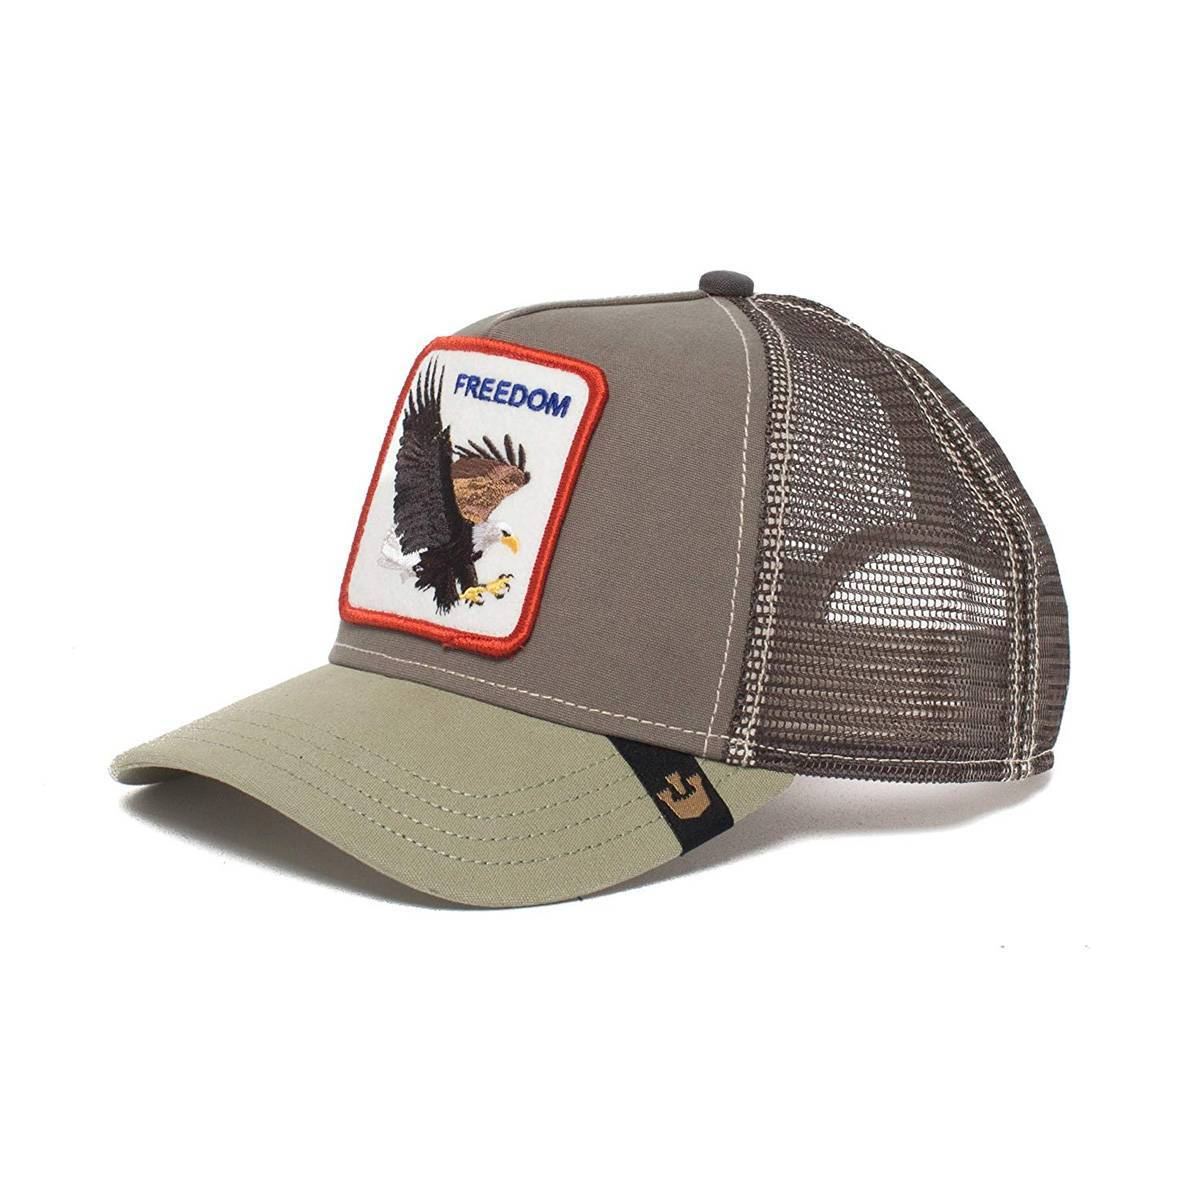 Goorin Bros Animal Farm Trucker Hat Freedom Olive 49253af8685e